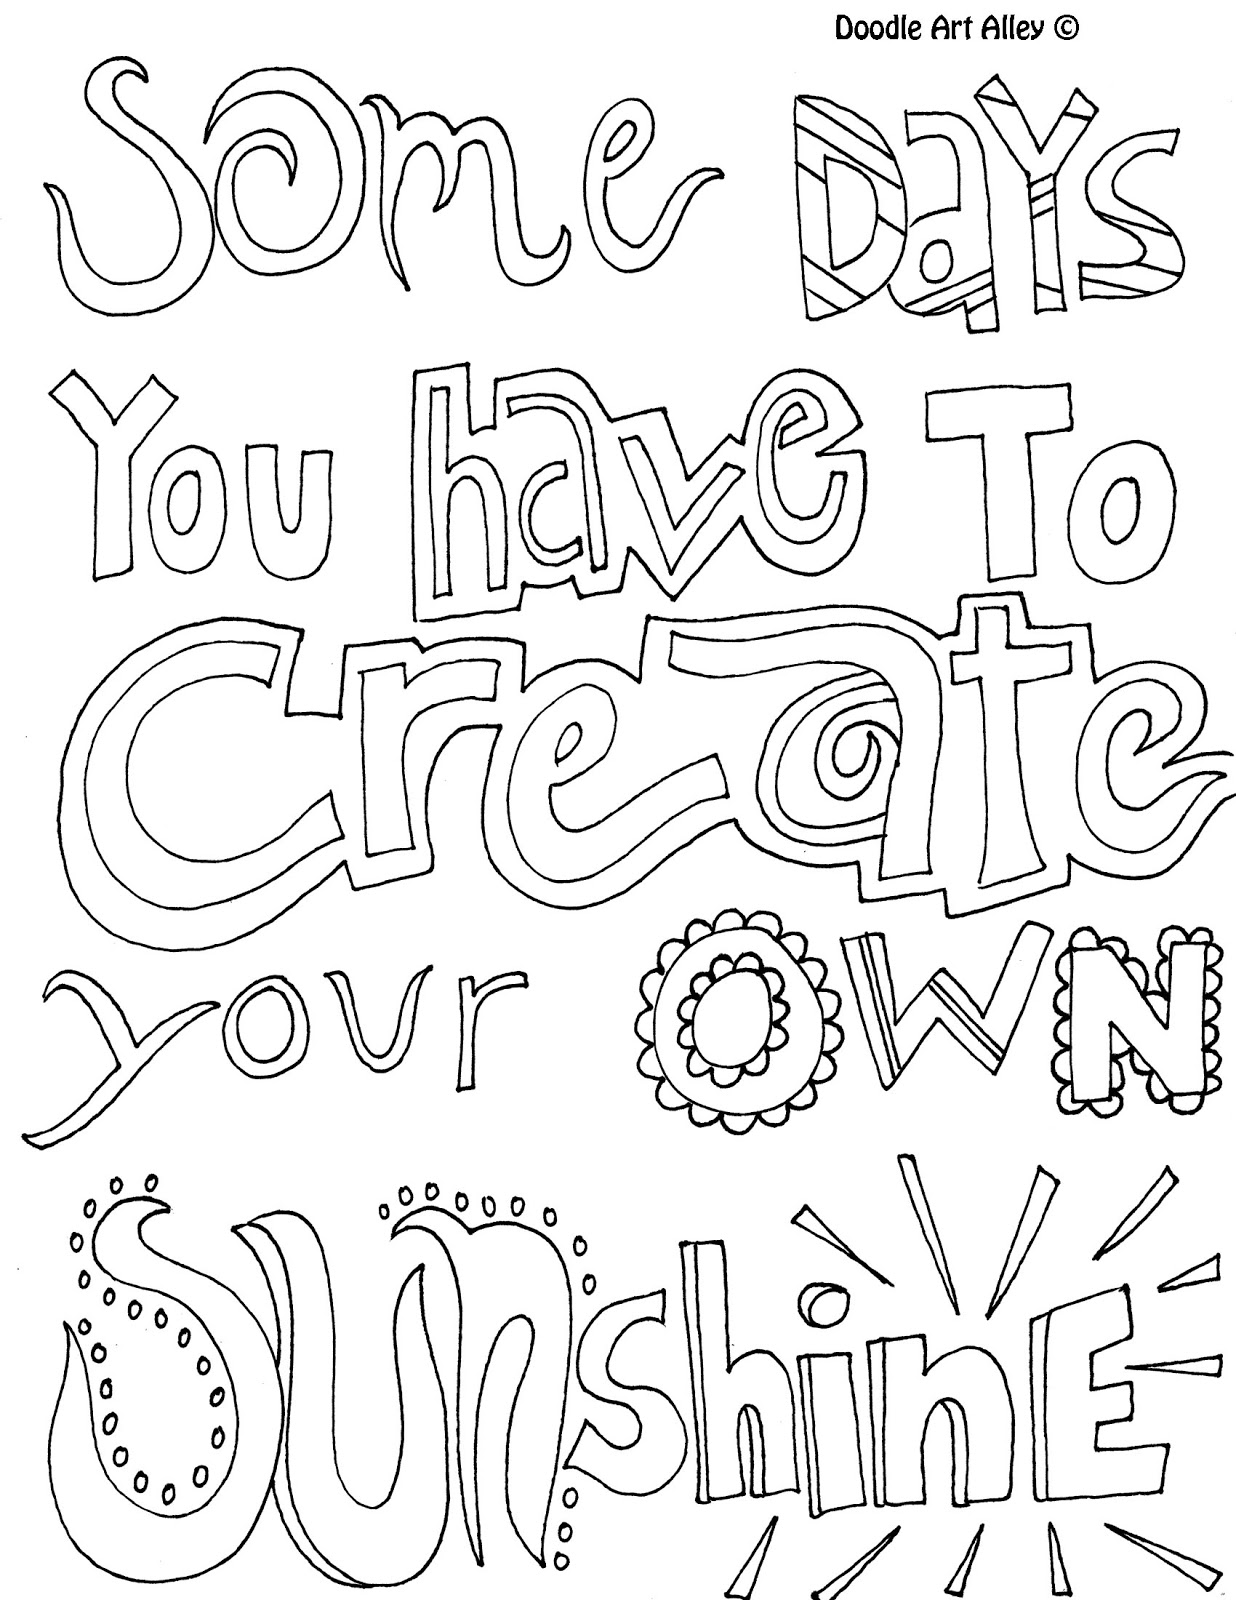 Adult Best Create Coloring Page Gallery Images beauty life quotes coloring pages printable quotesgram gallery images